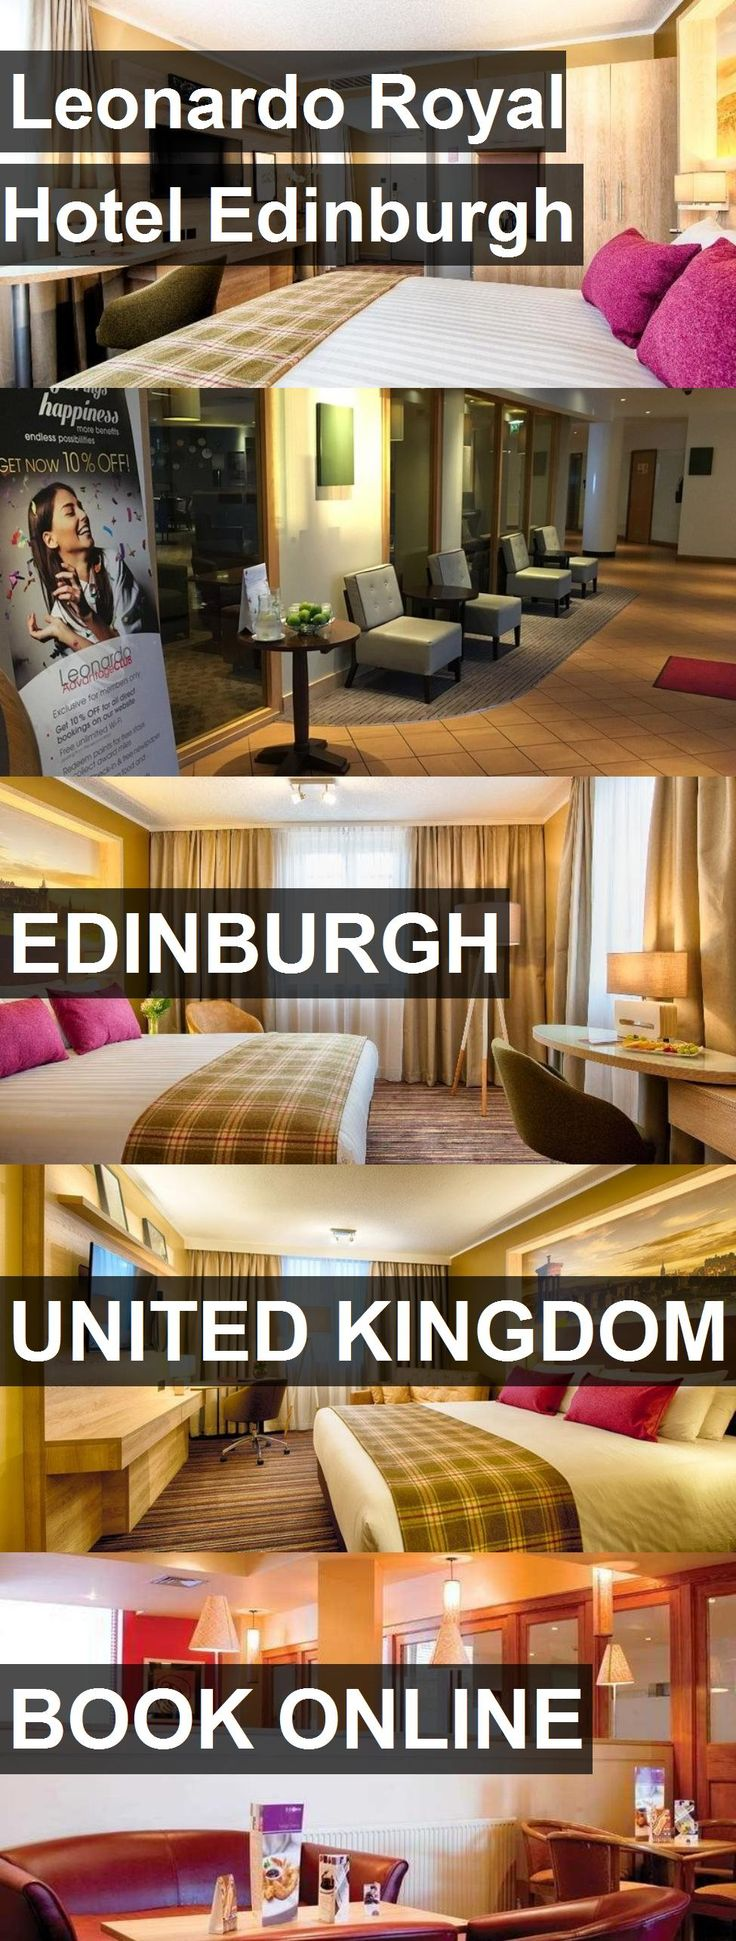 Hotel Leonardo Royal Hotel Edinburgh in Edinburgh, United Kingdom. For more information, photos, reviews and best prices please follow the link. #UnitedKingdom #Edinburgh #LeonardoRoyalHotelEdinburgh #hotel #travel #vacation